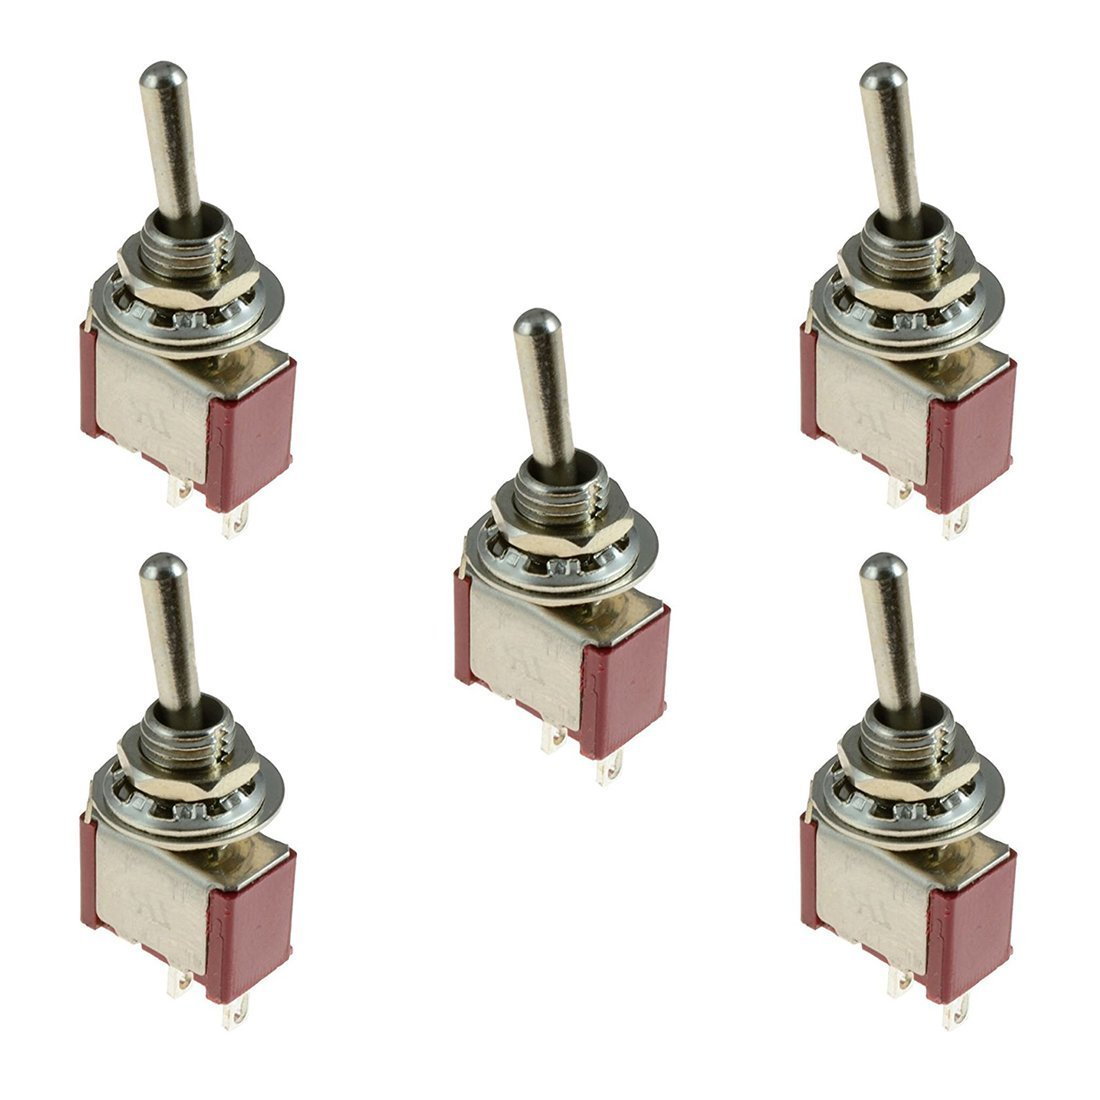 SODIAL(R) 5 x On/Off Small Toggle Switch Miniature SPST 6mm - AC250V 3A 120V 5A